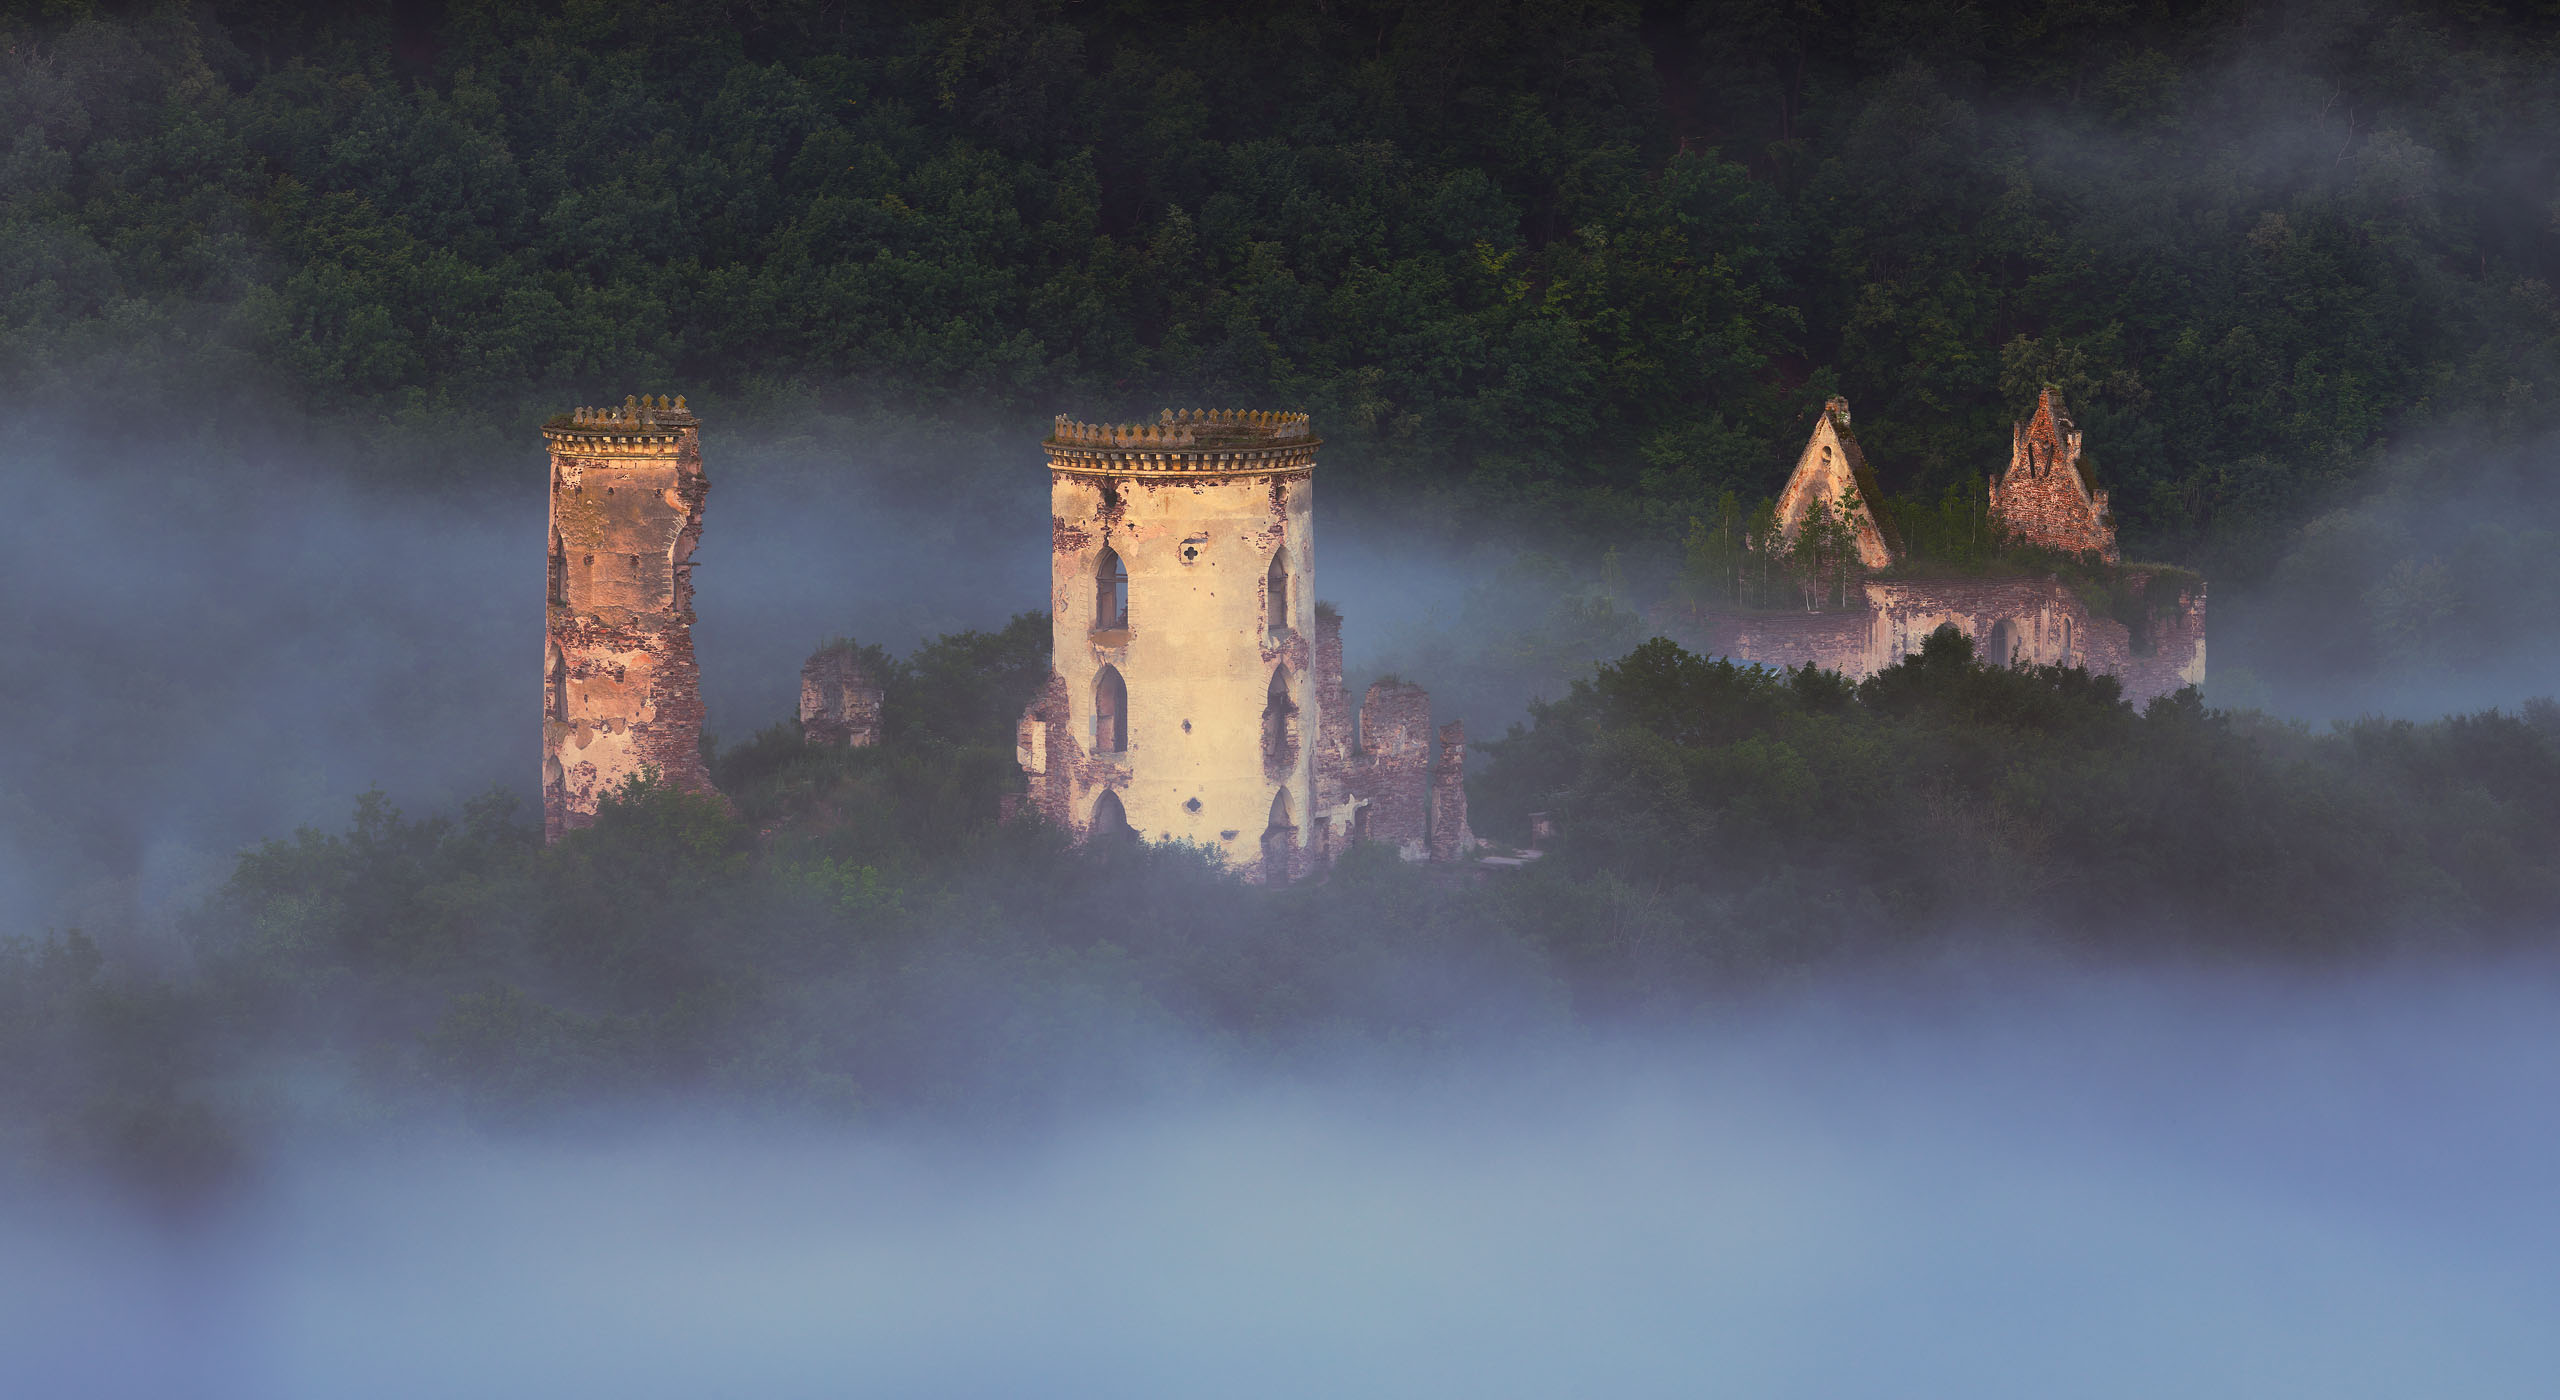 Panoramic view of Chervonohorod castle in mist